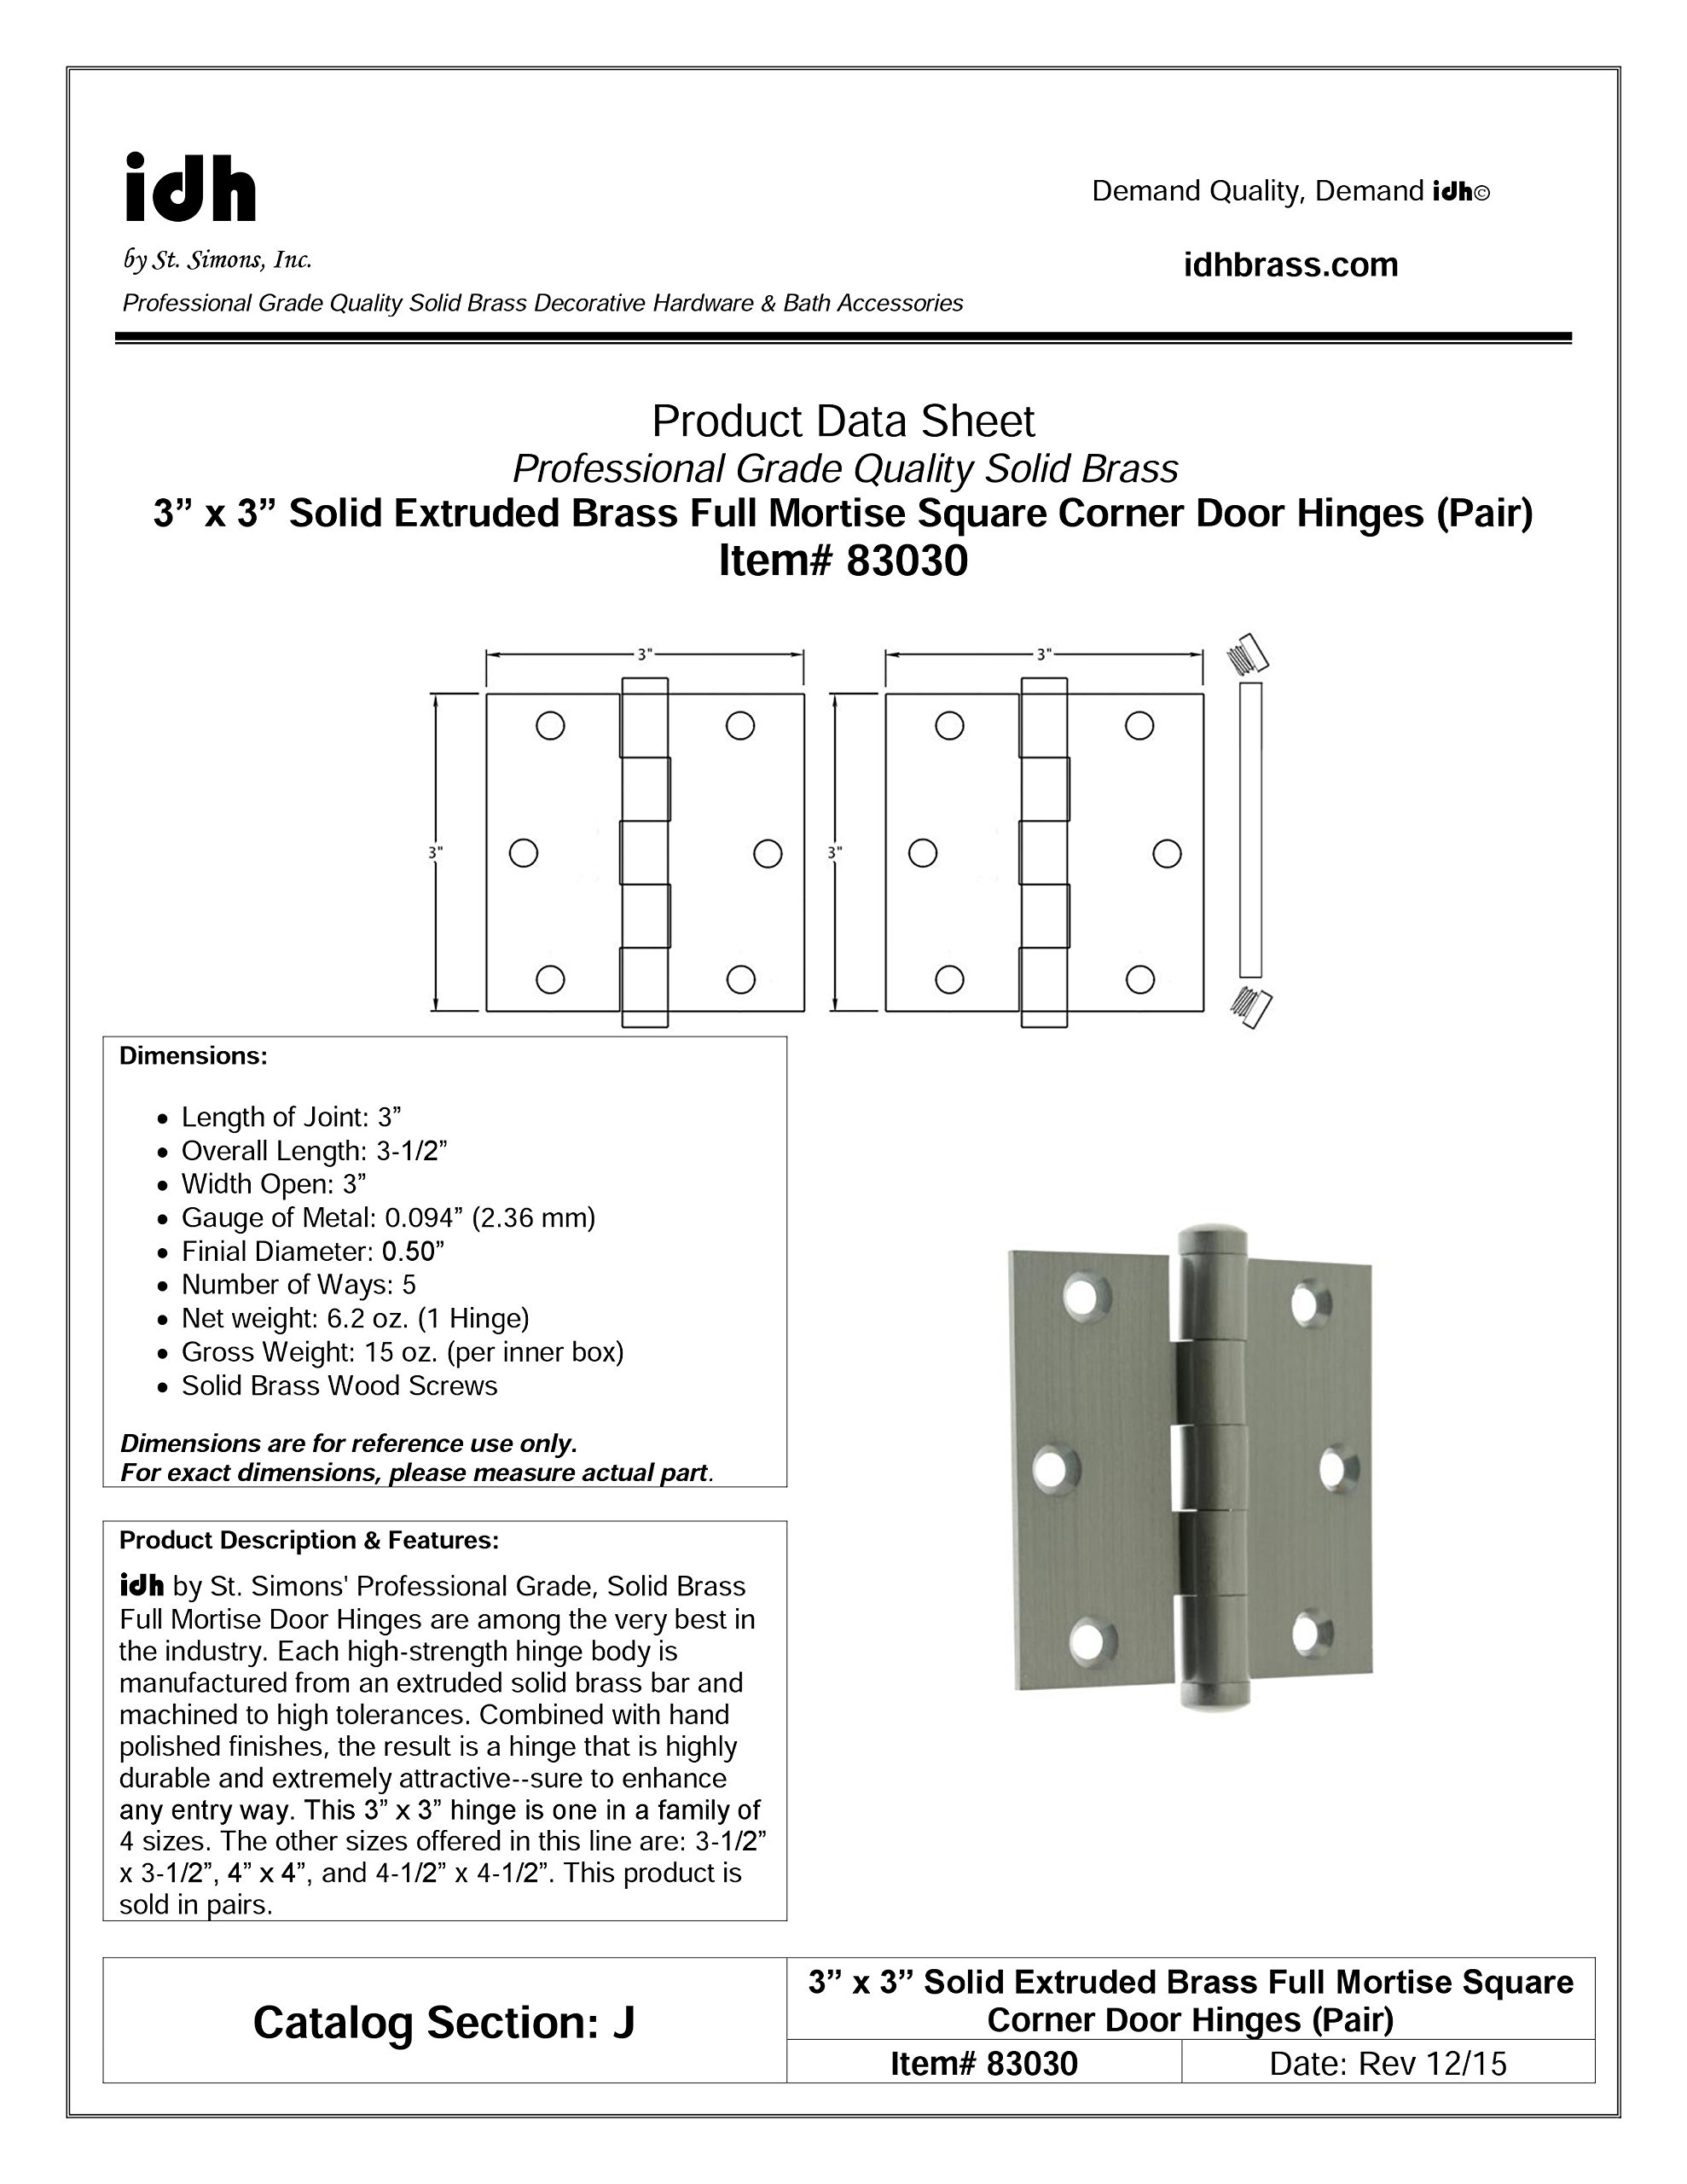 """Professional Grade Genuine Quality Solid Brass 3"""" x 3"""" Full Mortise Square Corner Door Hinges by idh (Pair) (Oil Rubbed Bronze)"""